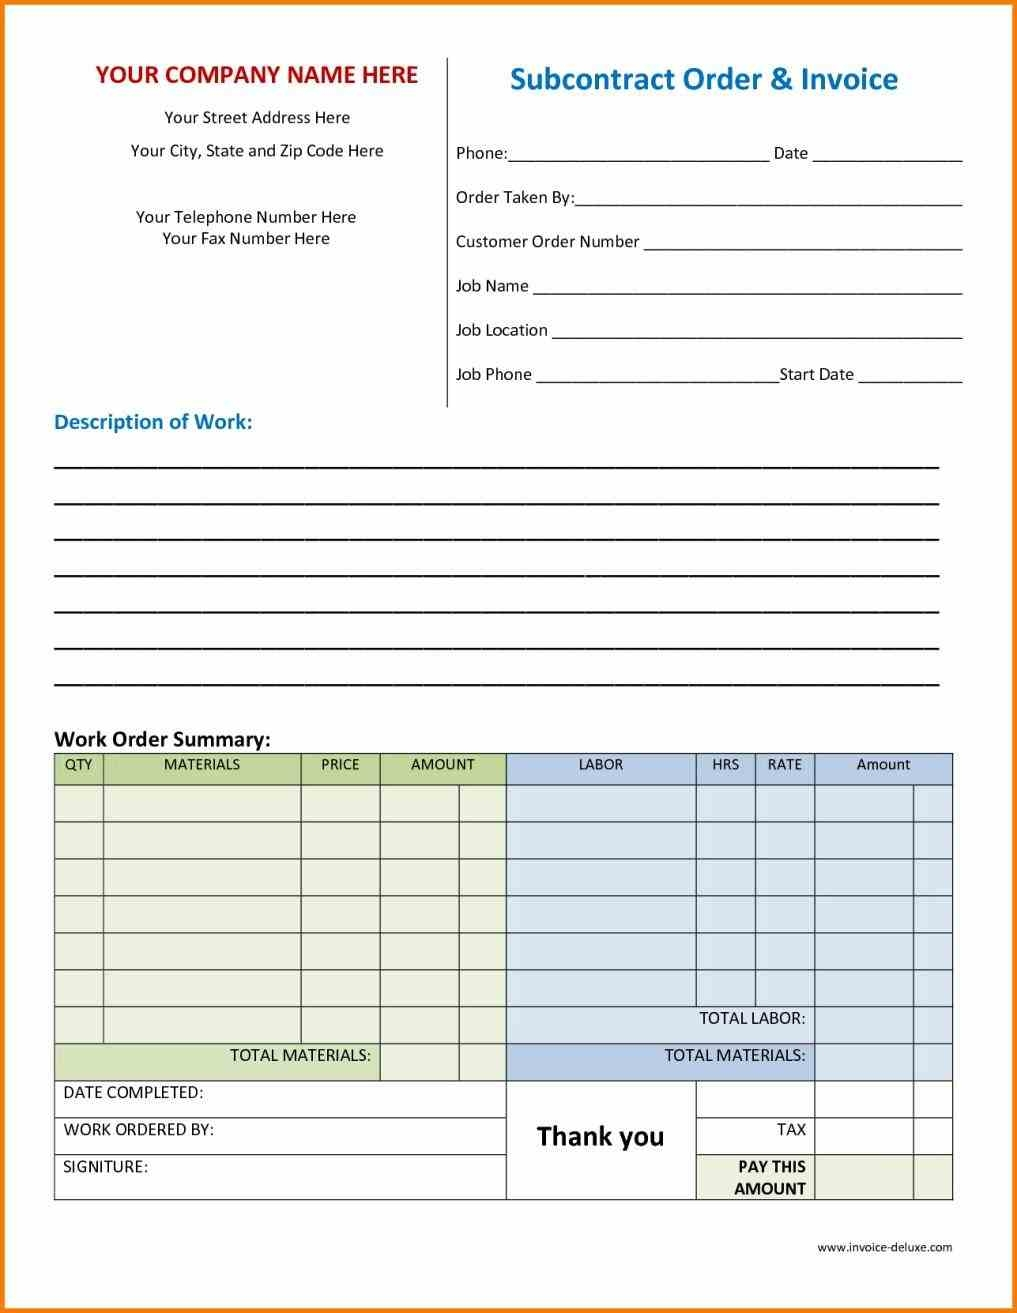 download work order receipt template the work order invoice order invoice template